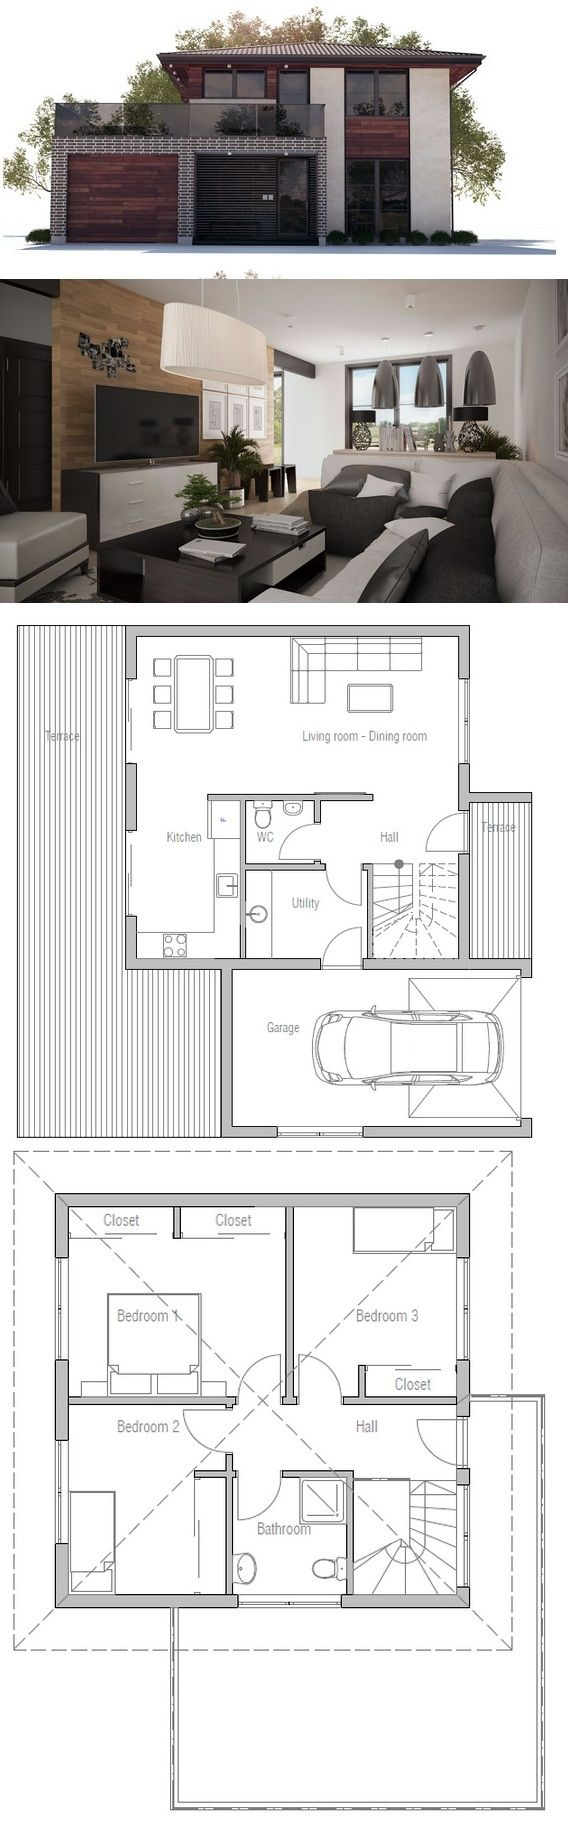 House Plan from ConceptHome.com Small House Plan